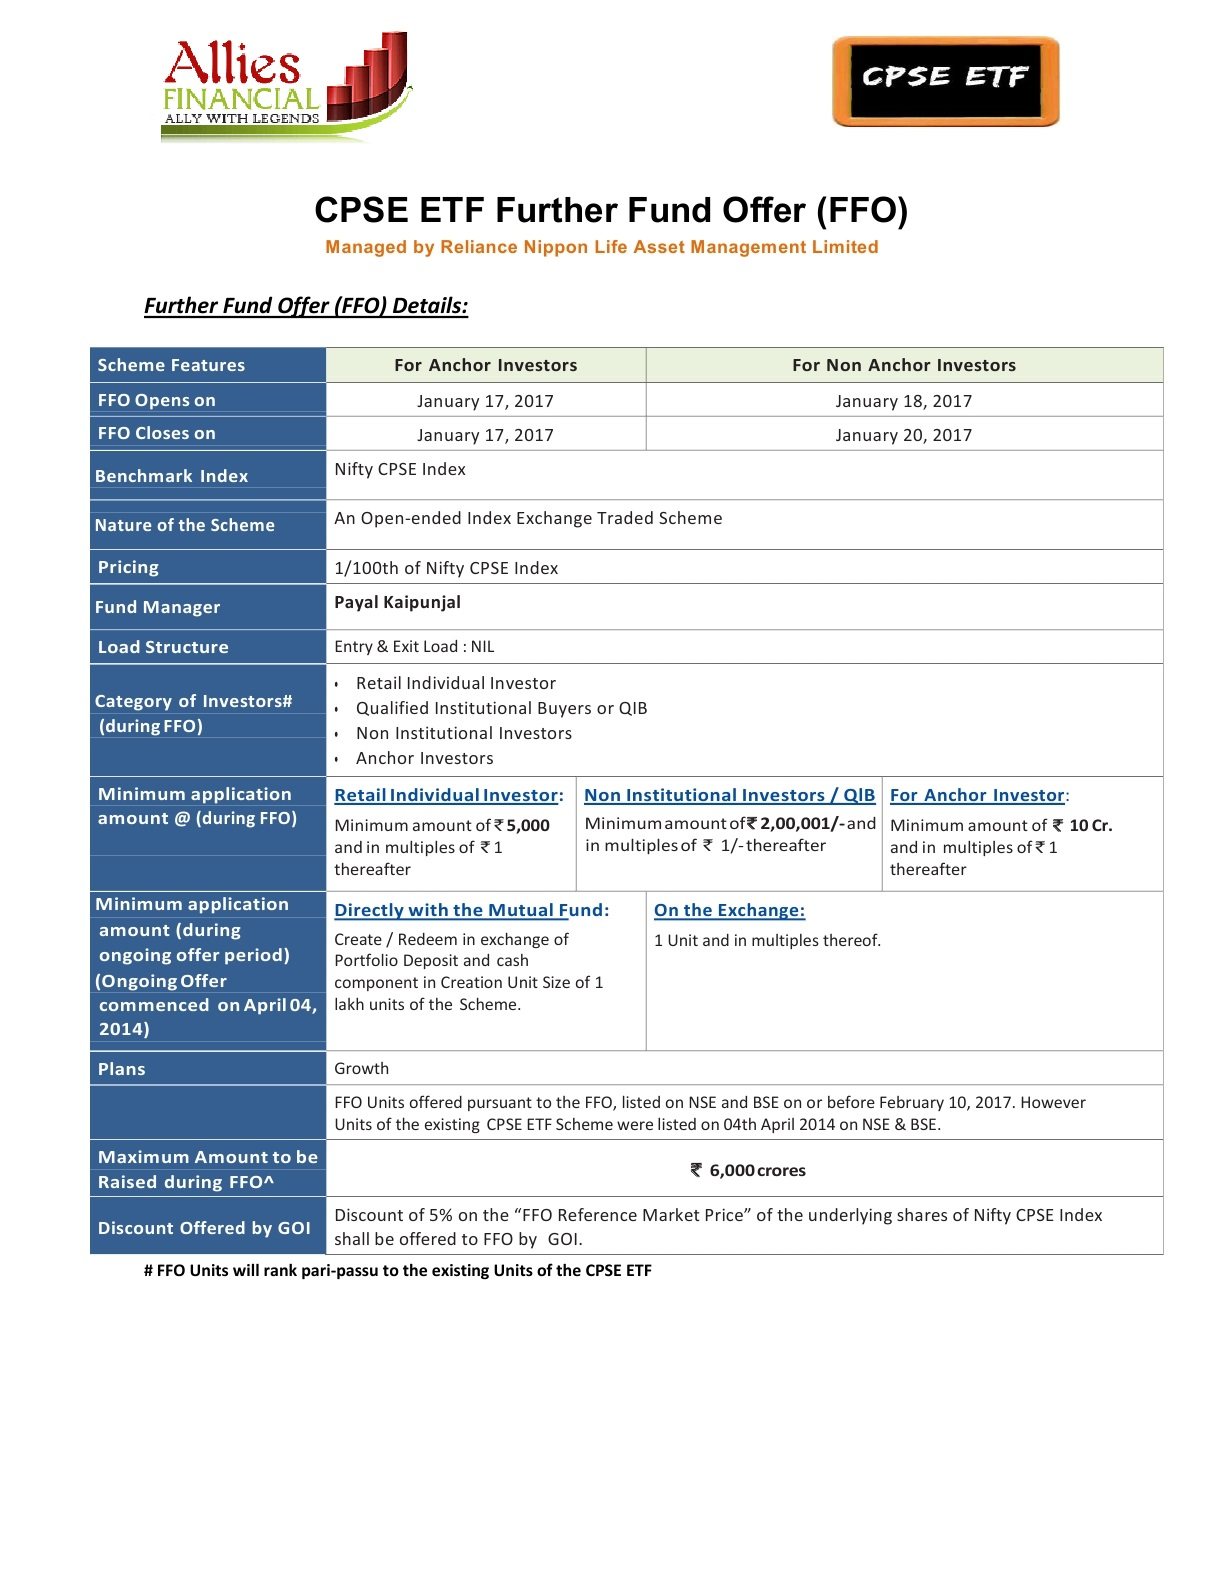 Reliance cpse etf ipo form download